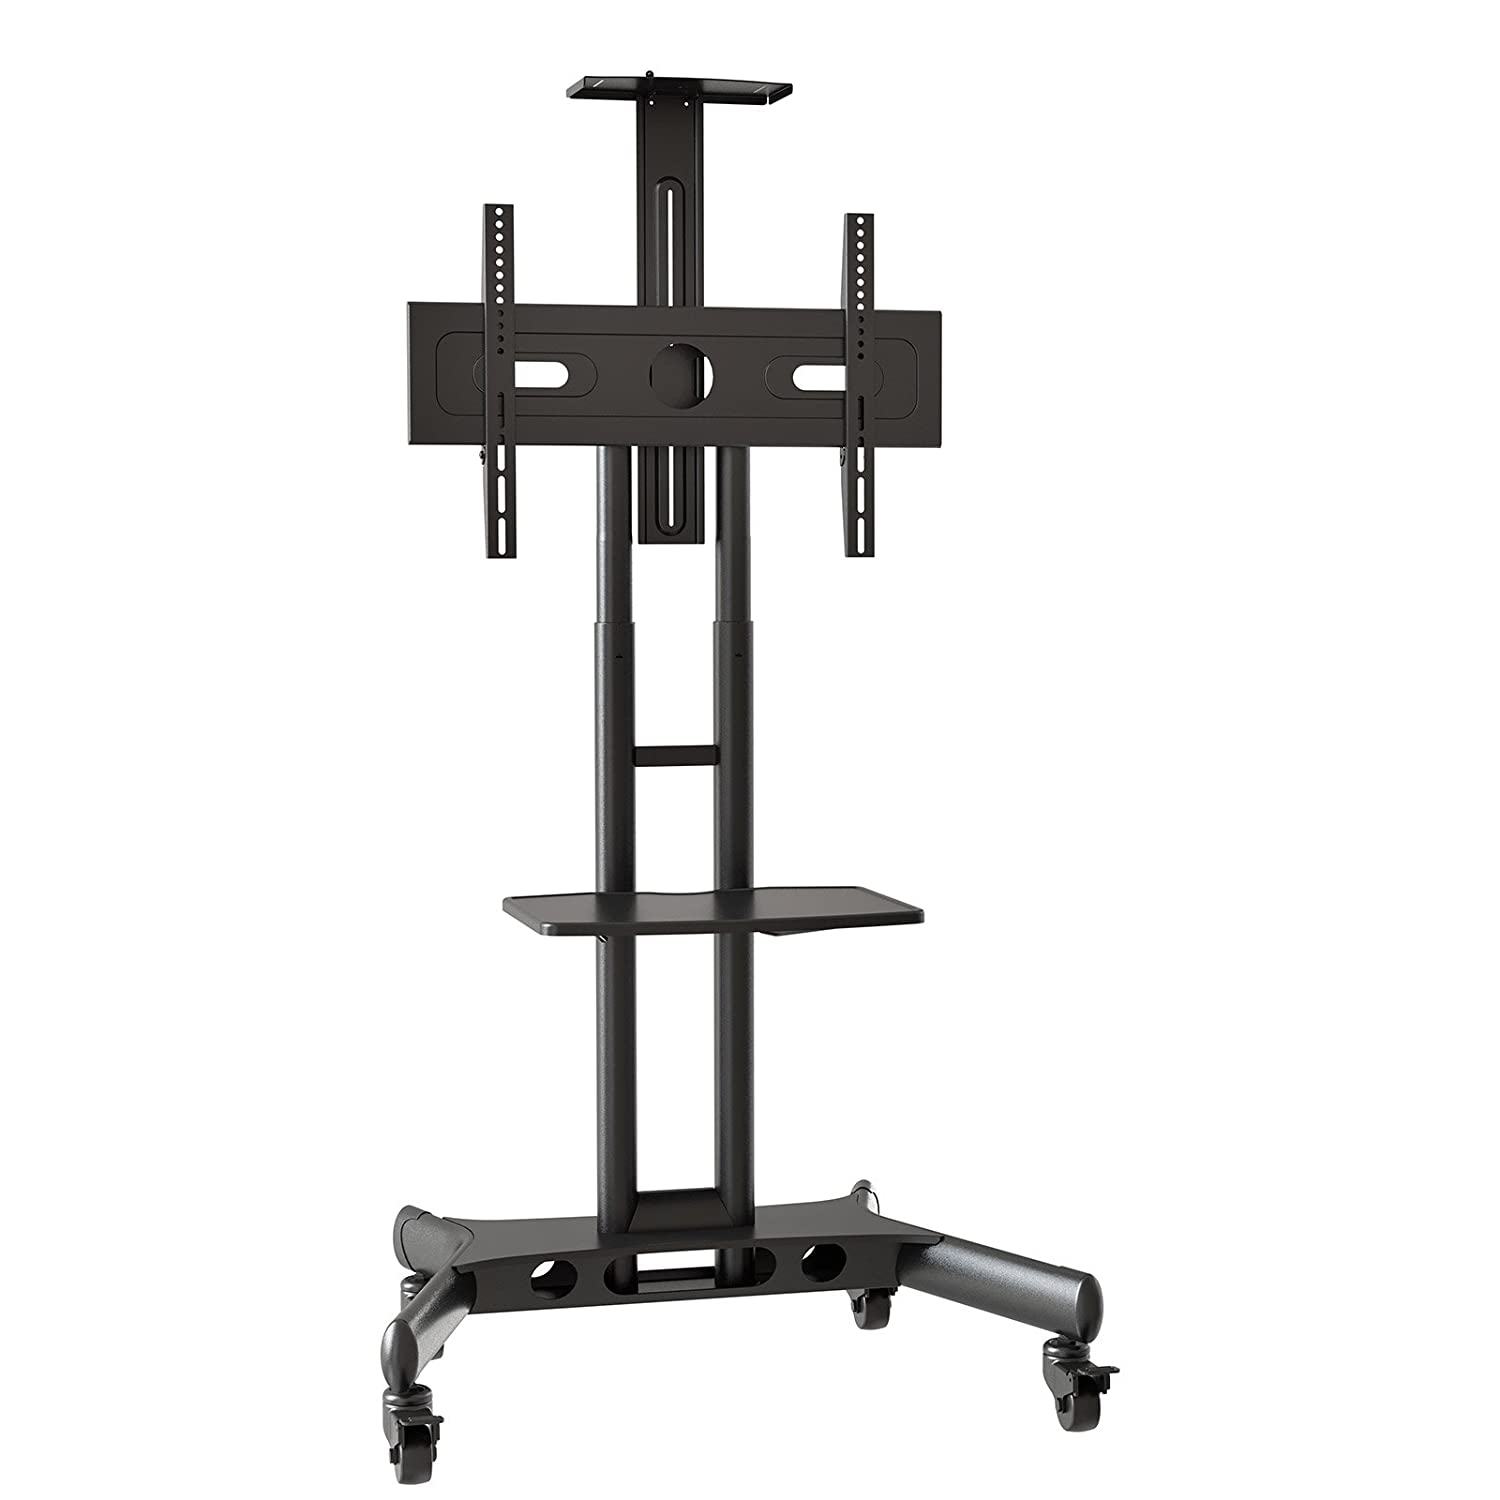 tv stand with mount 65 inch. amazon.com: mount factory rolling tv cart mobile stand for 40-65 inch flat screen, led, lcd, oled, plasma, curved tv\u0027s - universal with wheels: tv 65 t